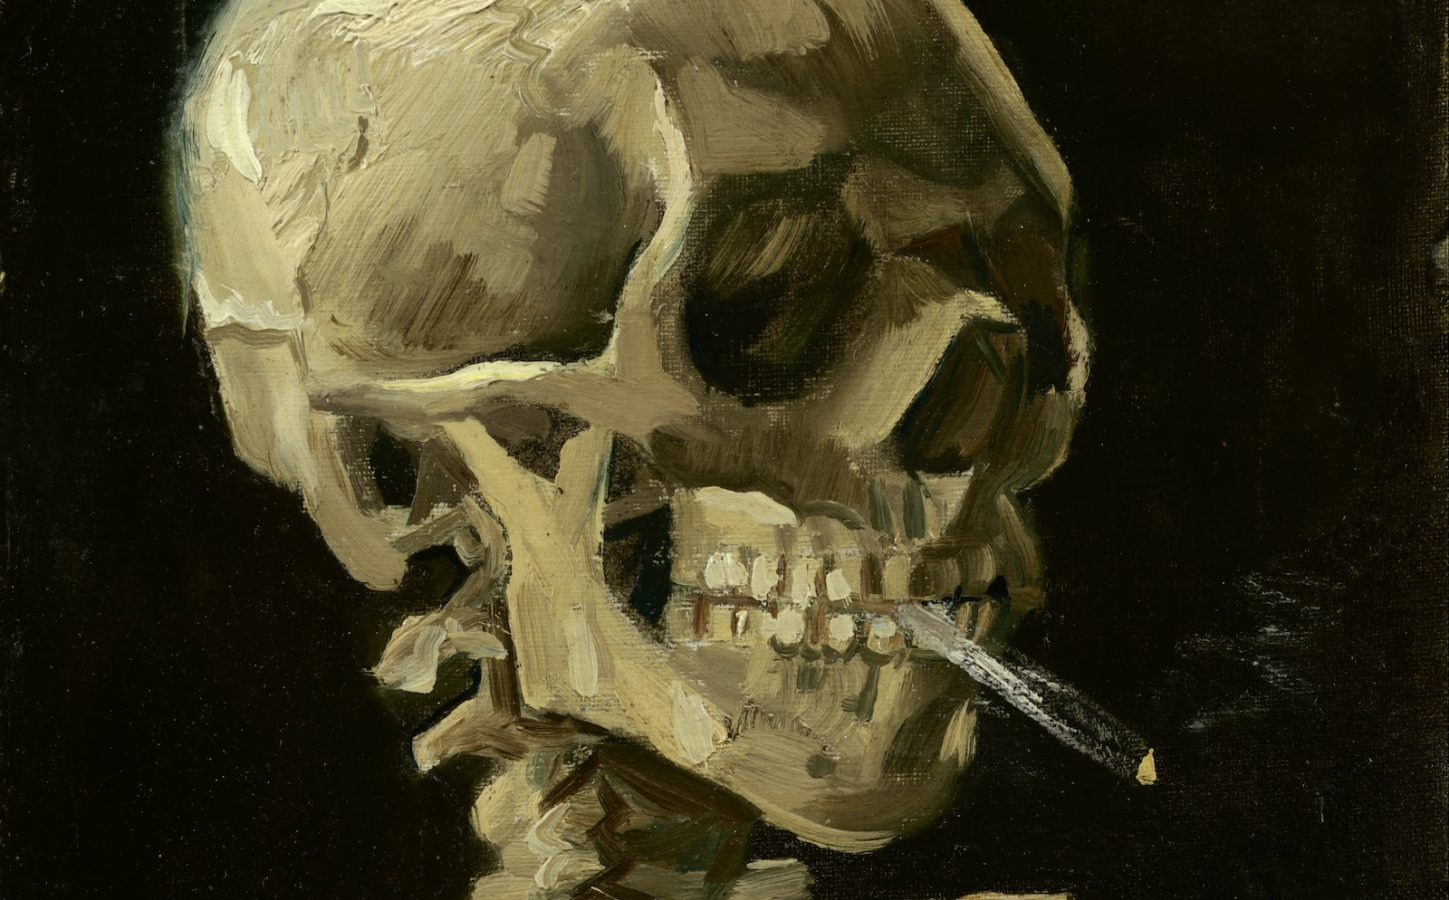 Sculls, Demons, Devils    13 Creepy Paintings Ideal For